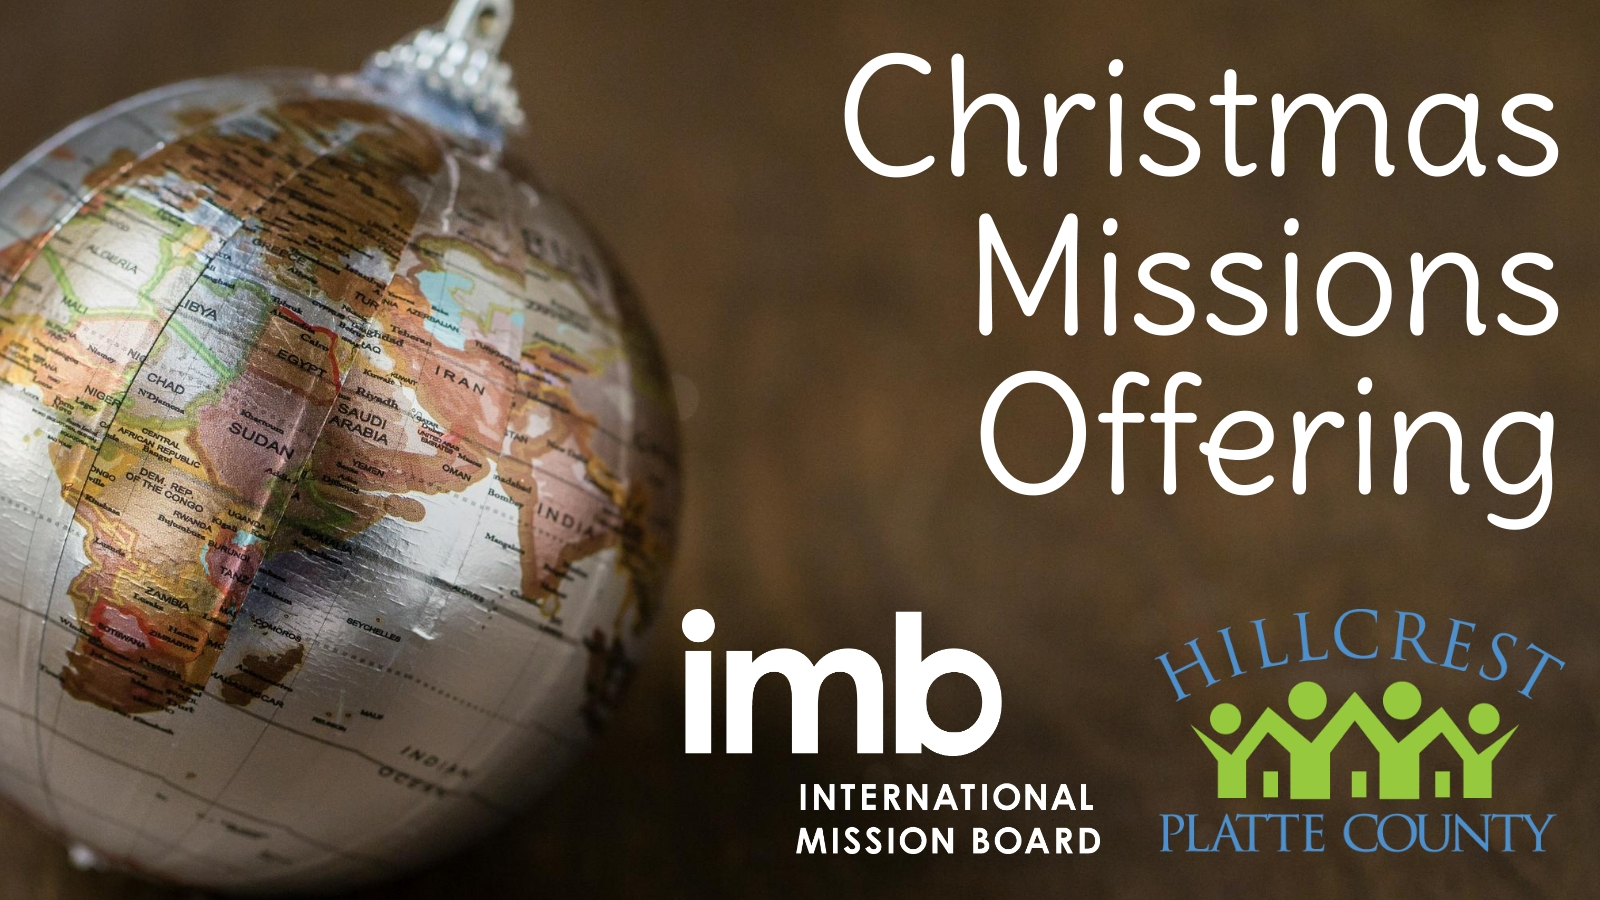 FOG-2018-ConnectionOpportunities-ChristmasMissionsOffering